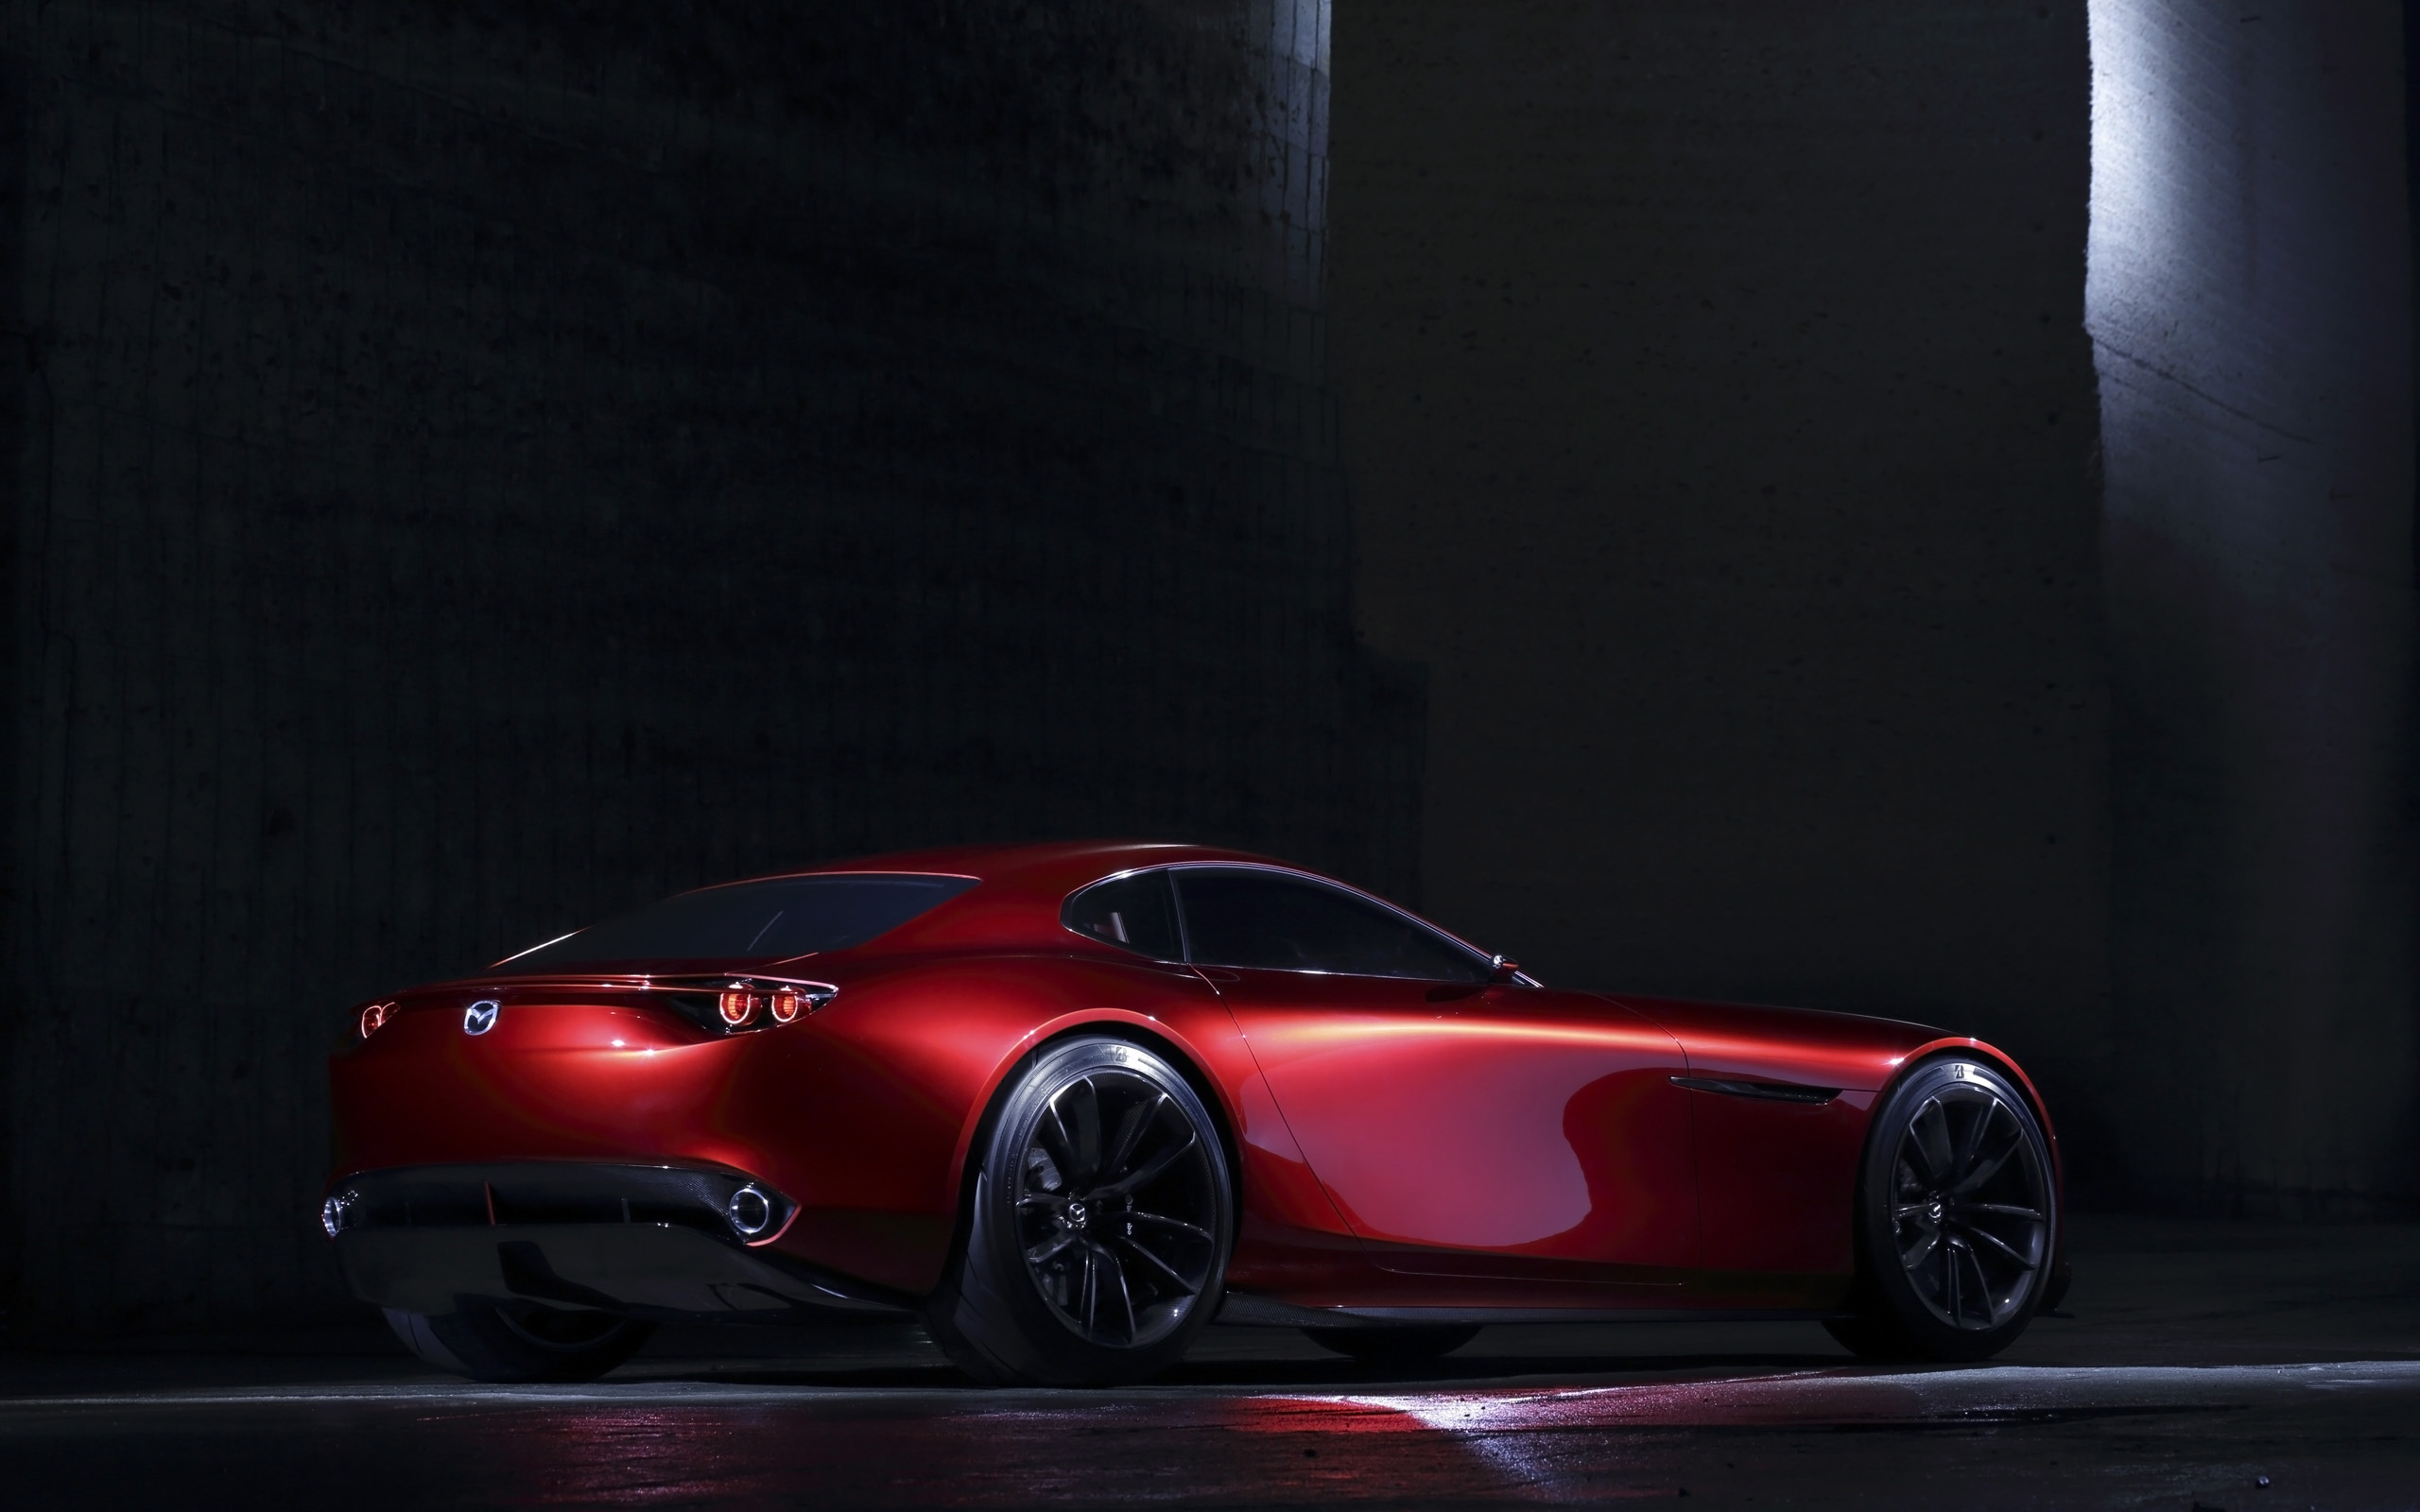 2015 Mazda RX Vision Concept 3 Wallpaper HD Car Wallpapers